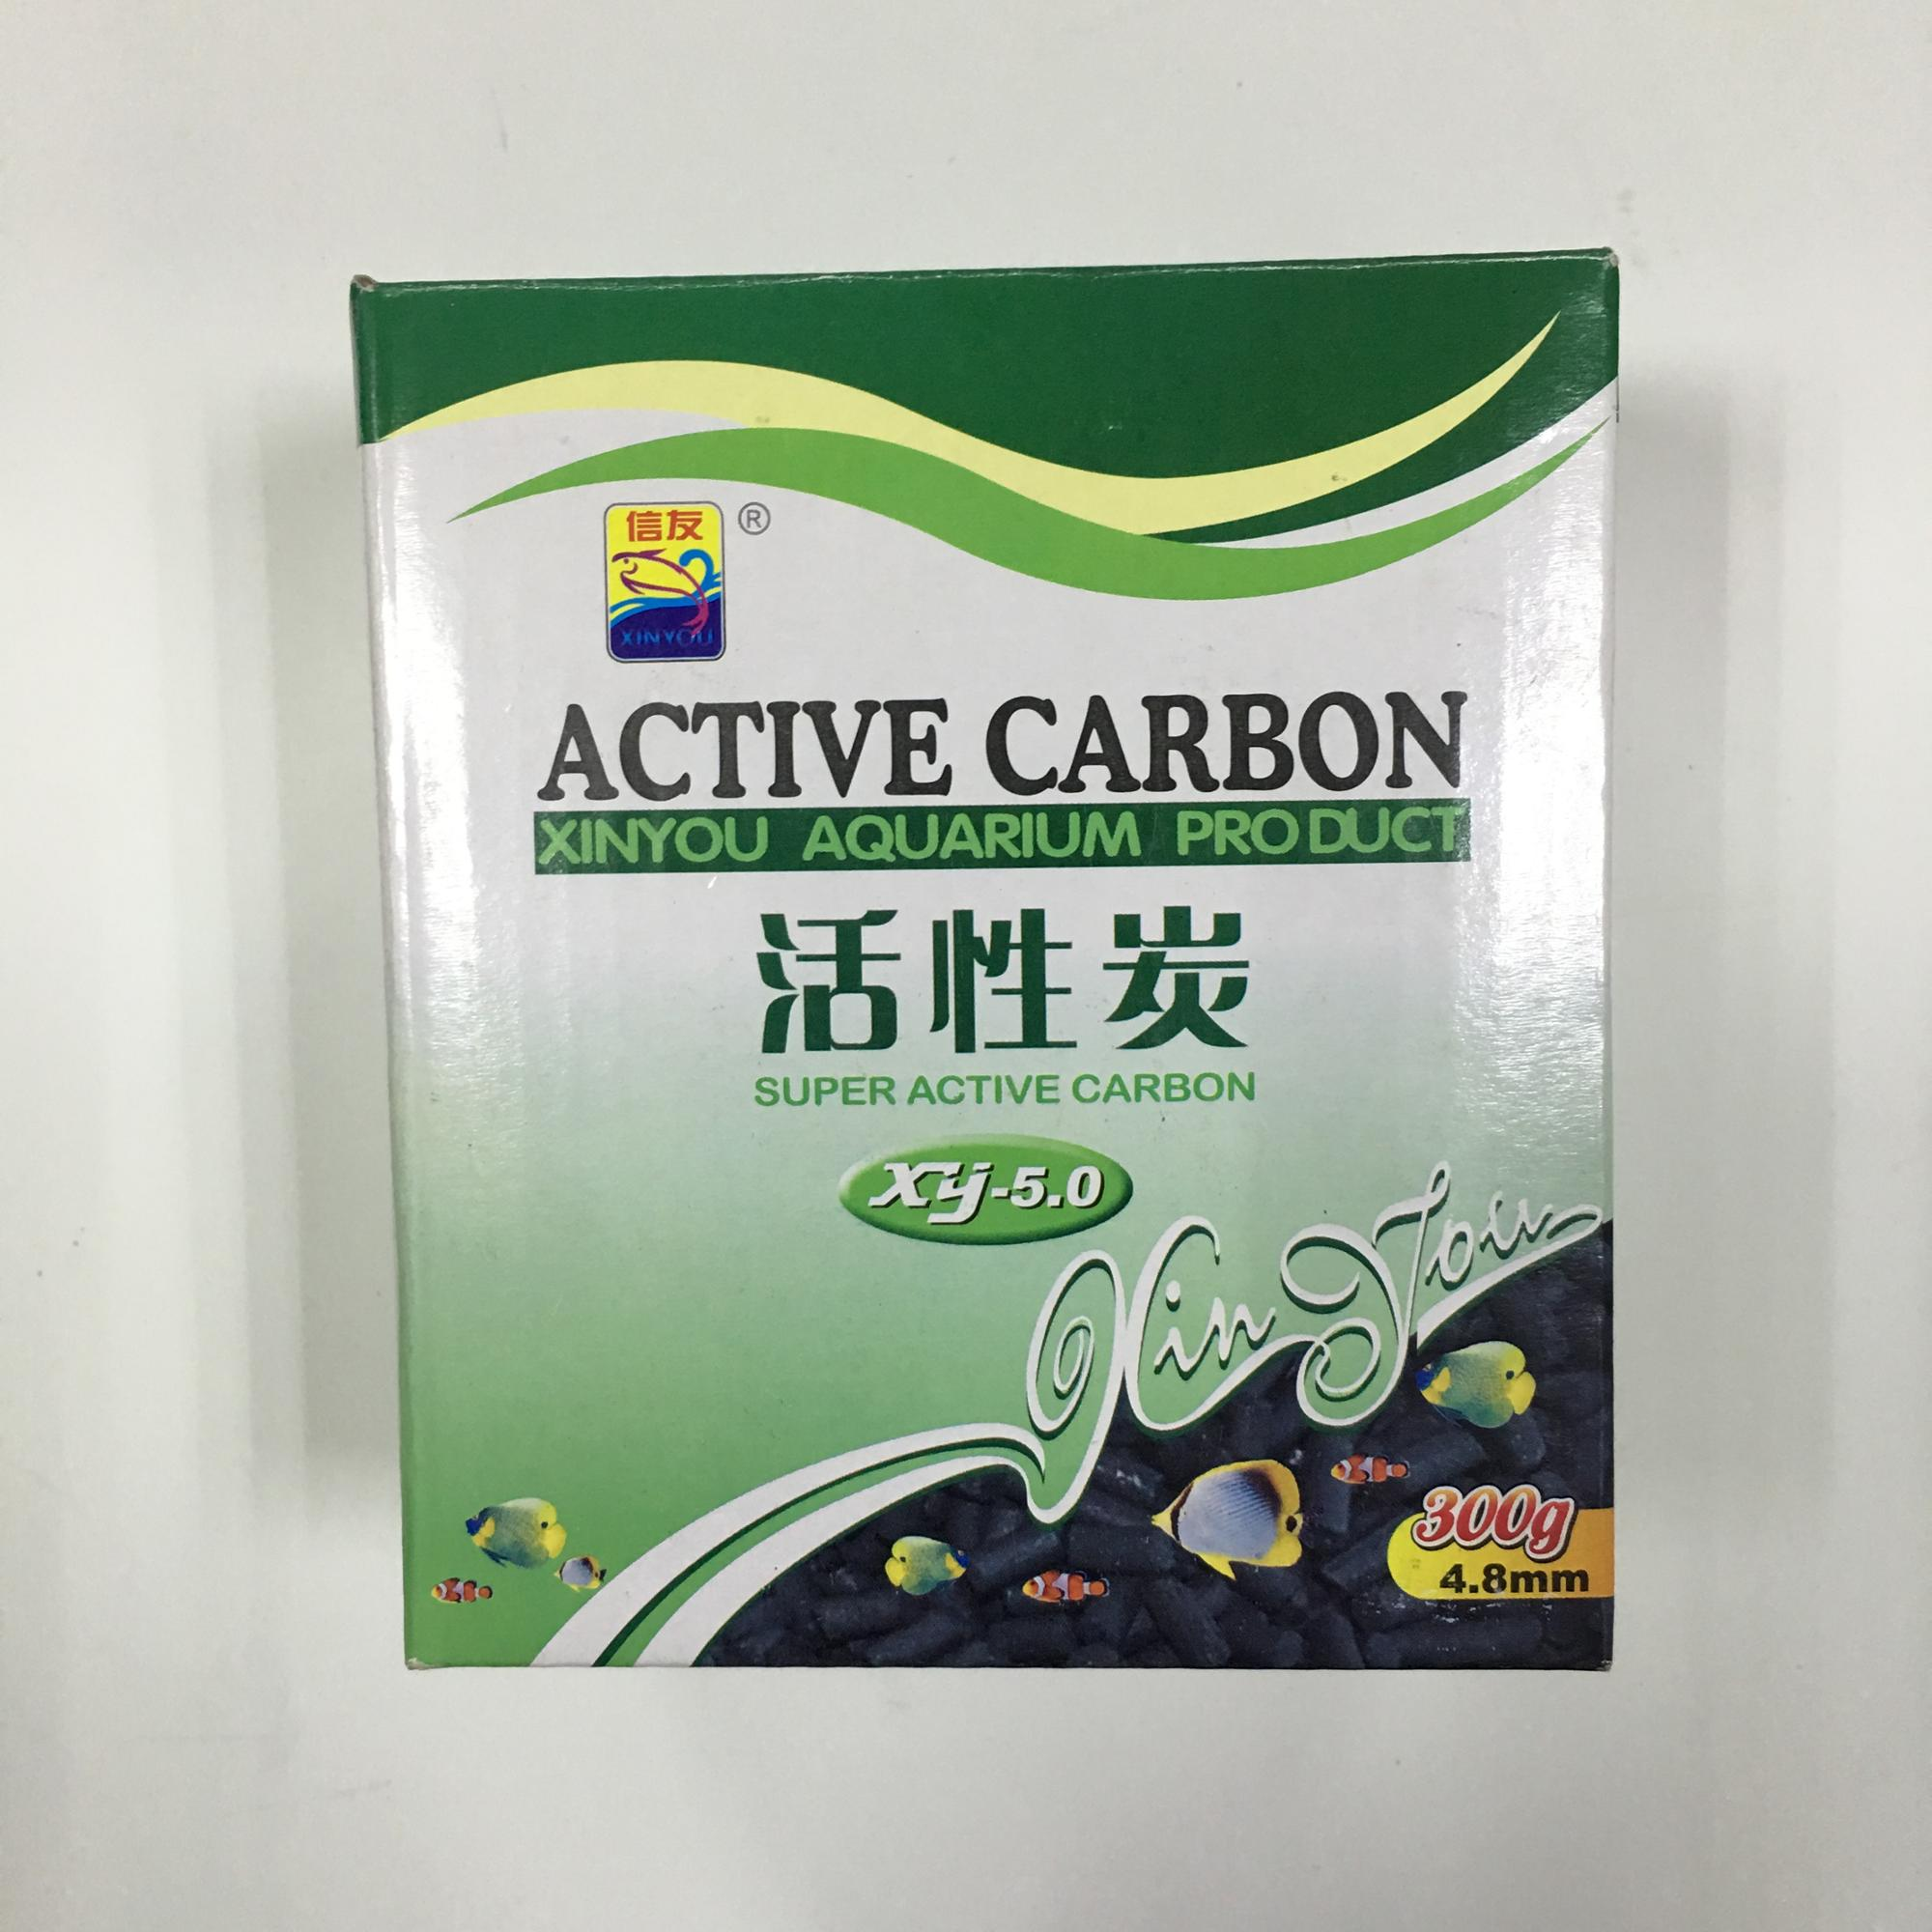 XINYOU active carbon , activated carbon in bio pond filter, filter system, filter supplies box package